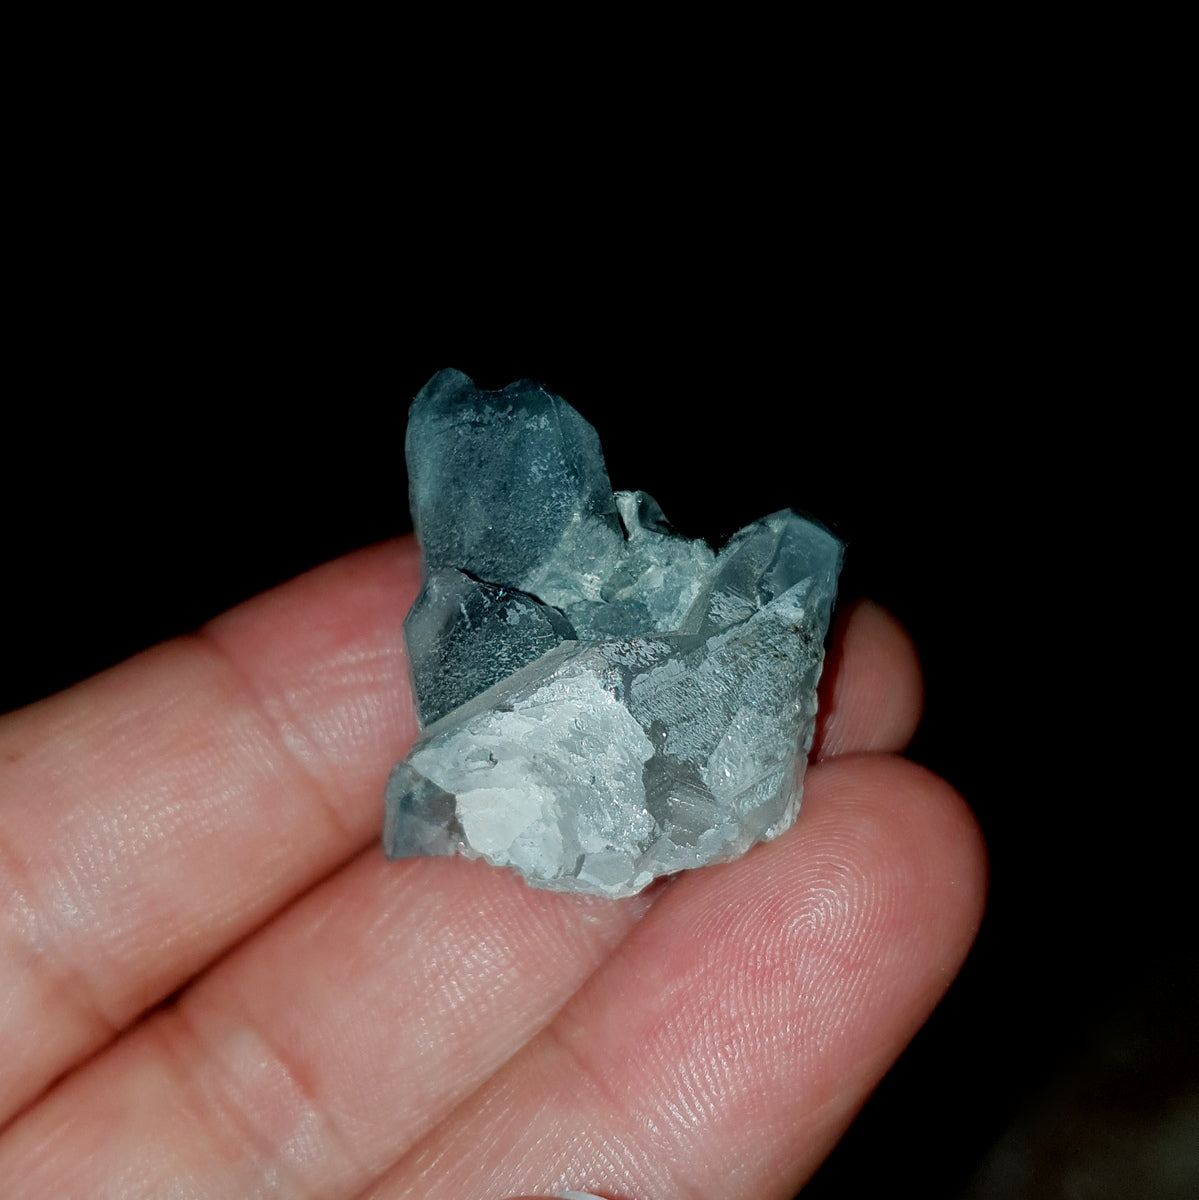 Blue Tara - Blue Riebeckite Included Quartz Rare - Shop Now at Illiom Crystals - Afterpay Available